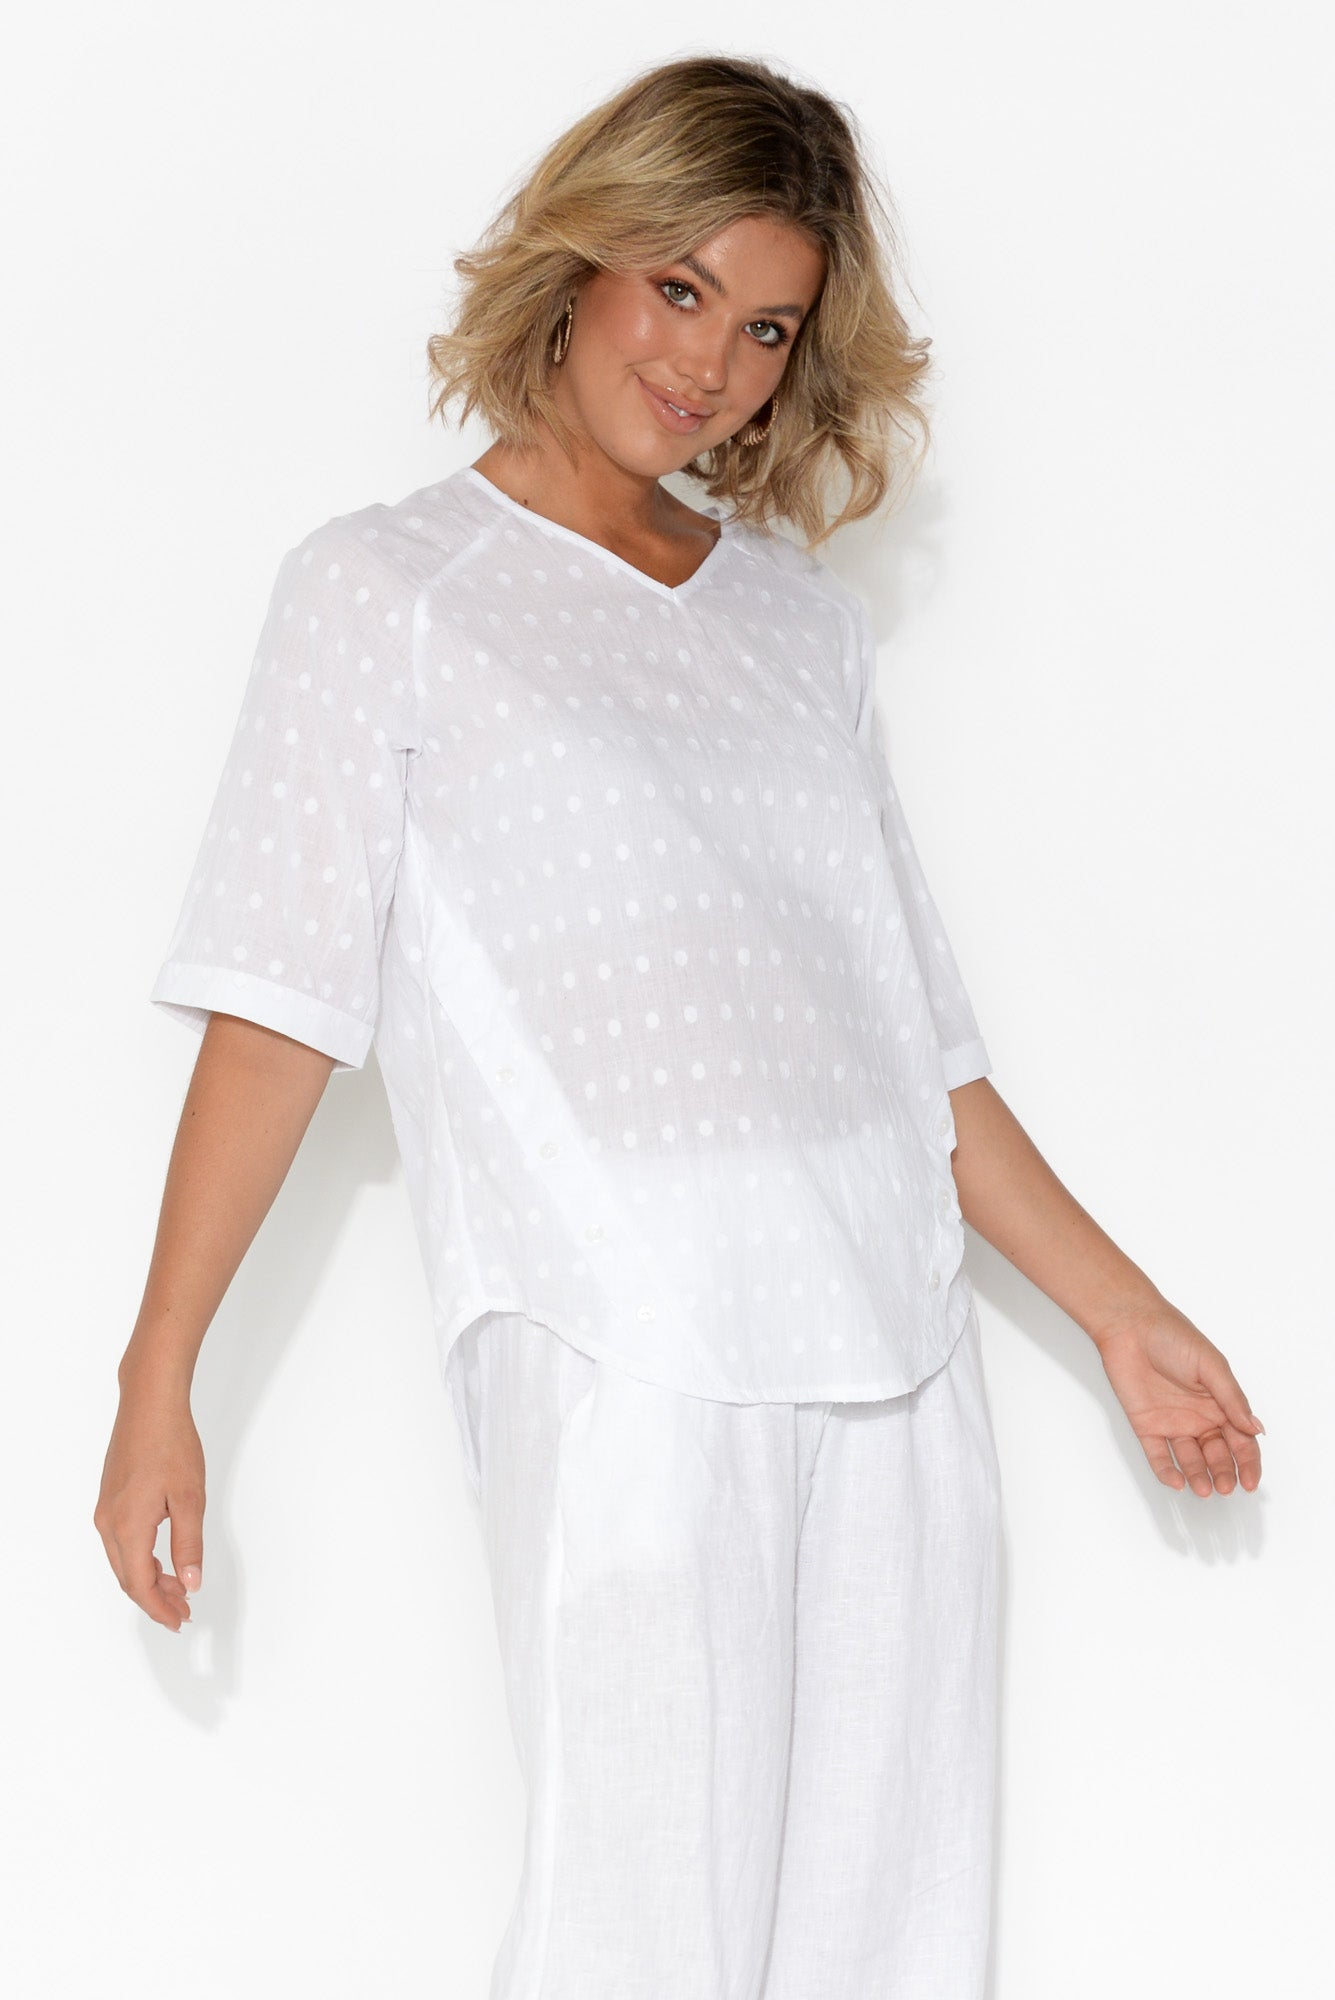 Daniela Textured White Cotton Top